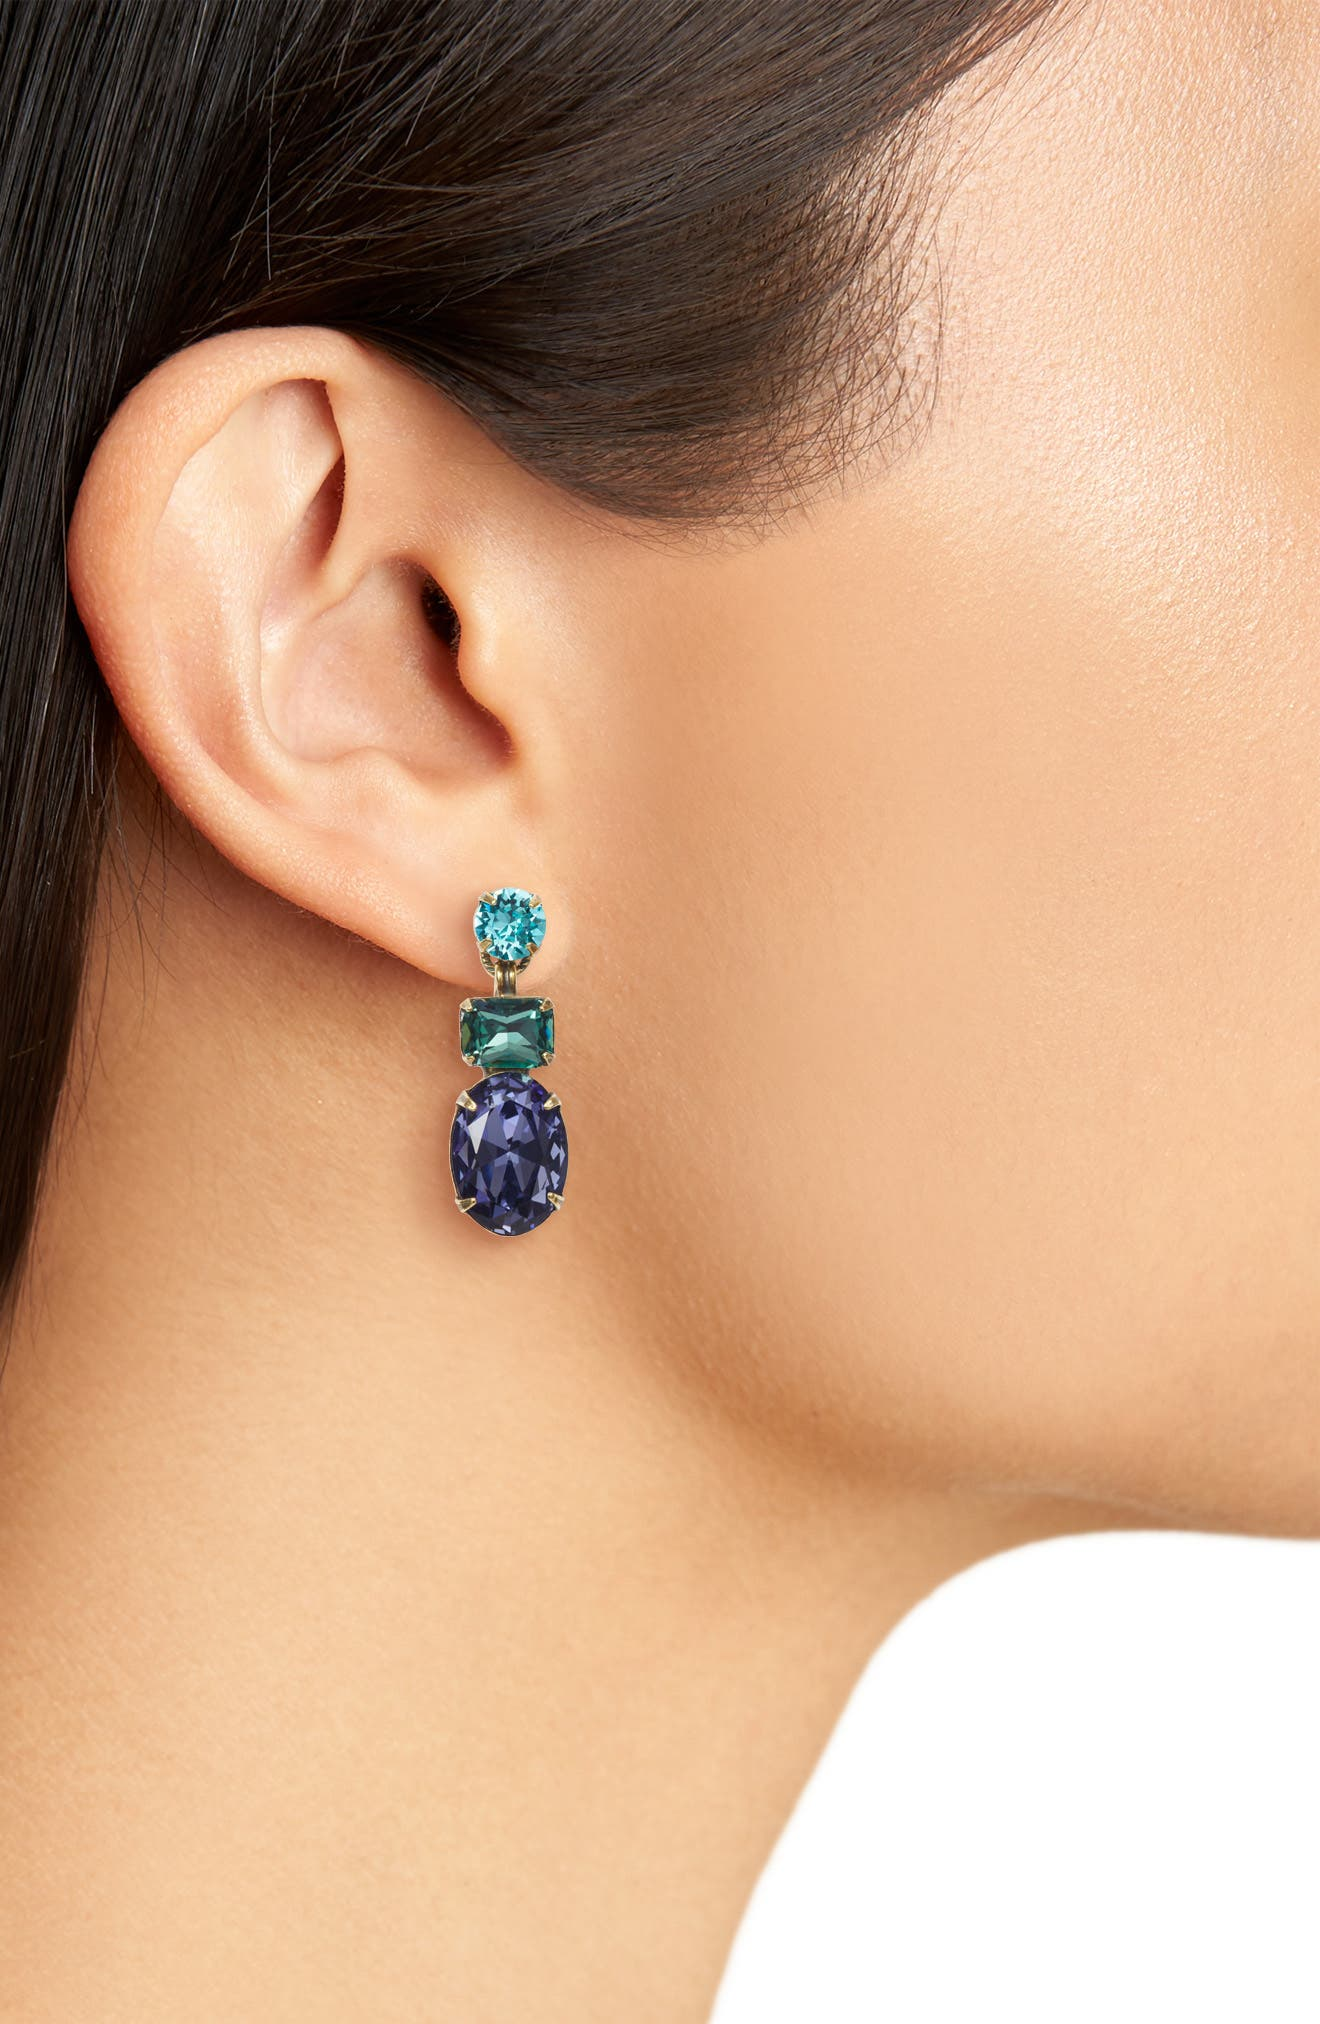 Forget Me Not Drop Earrings,                             Alternate thumbnail 2, color,                             710